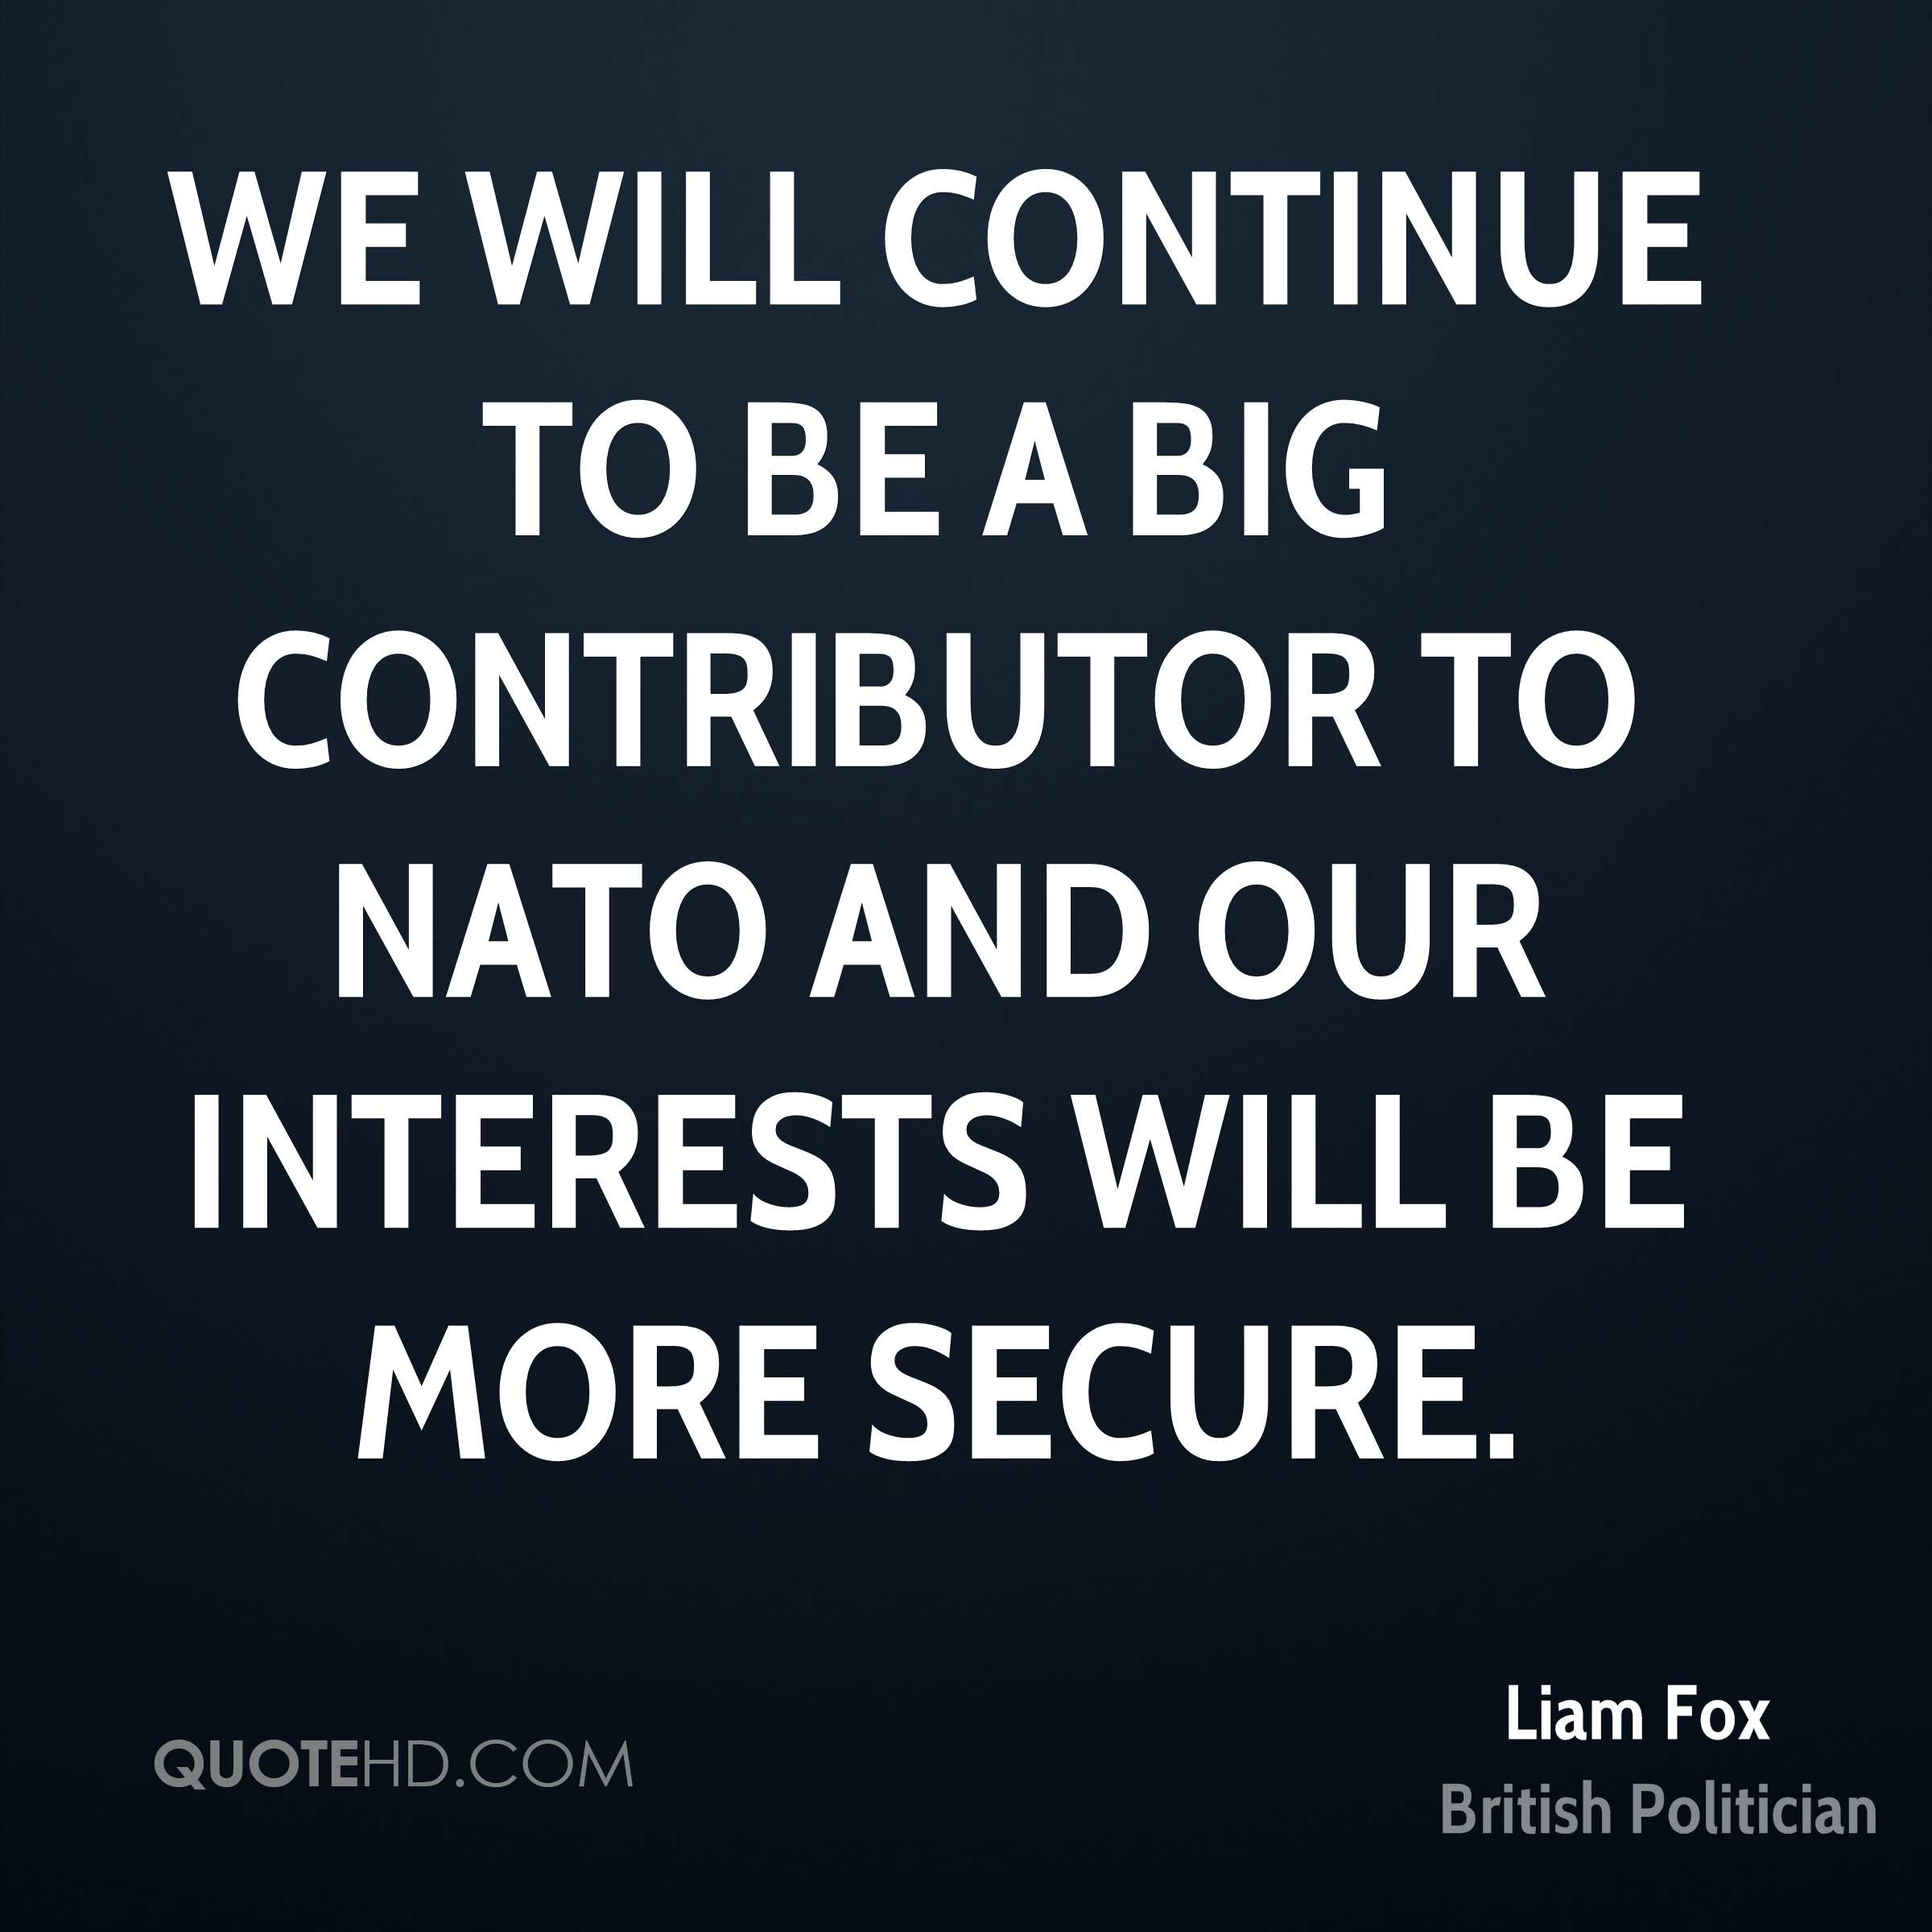 We will continue to be a big contributor to NATO and our interests will be more secure.